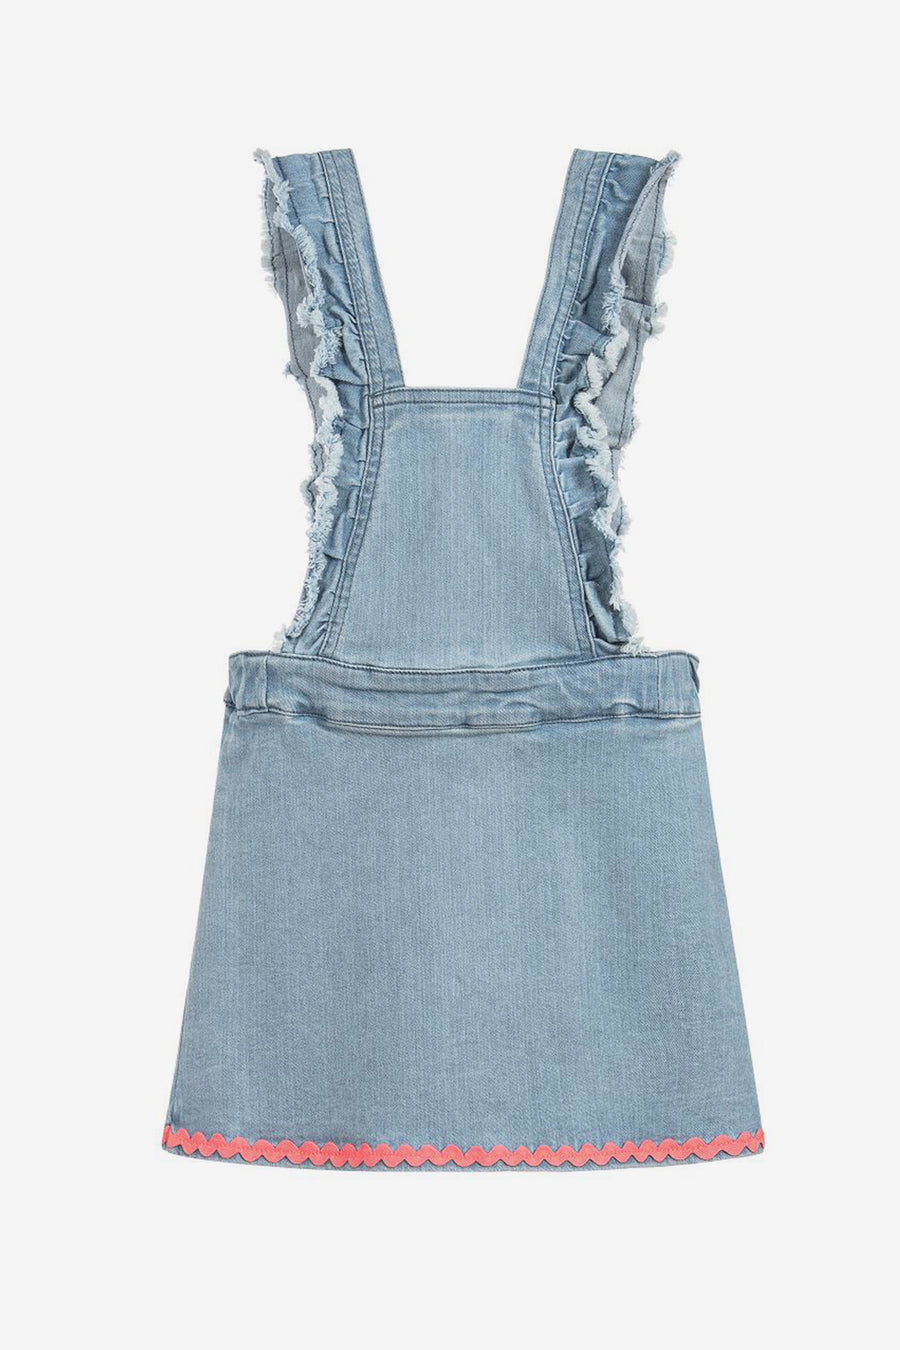 Billieblush Overall Denim Dress